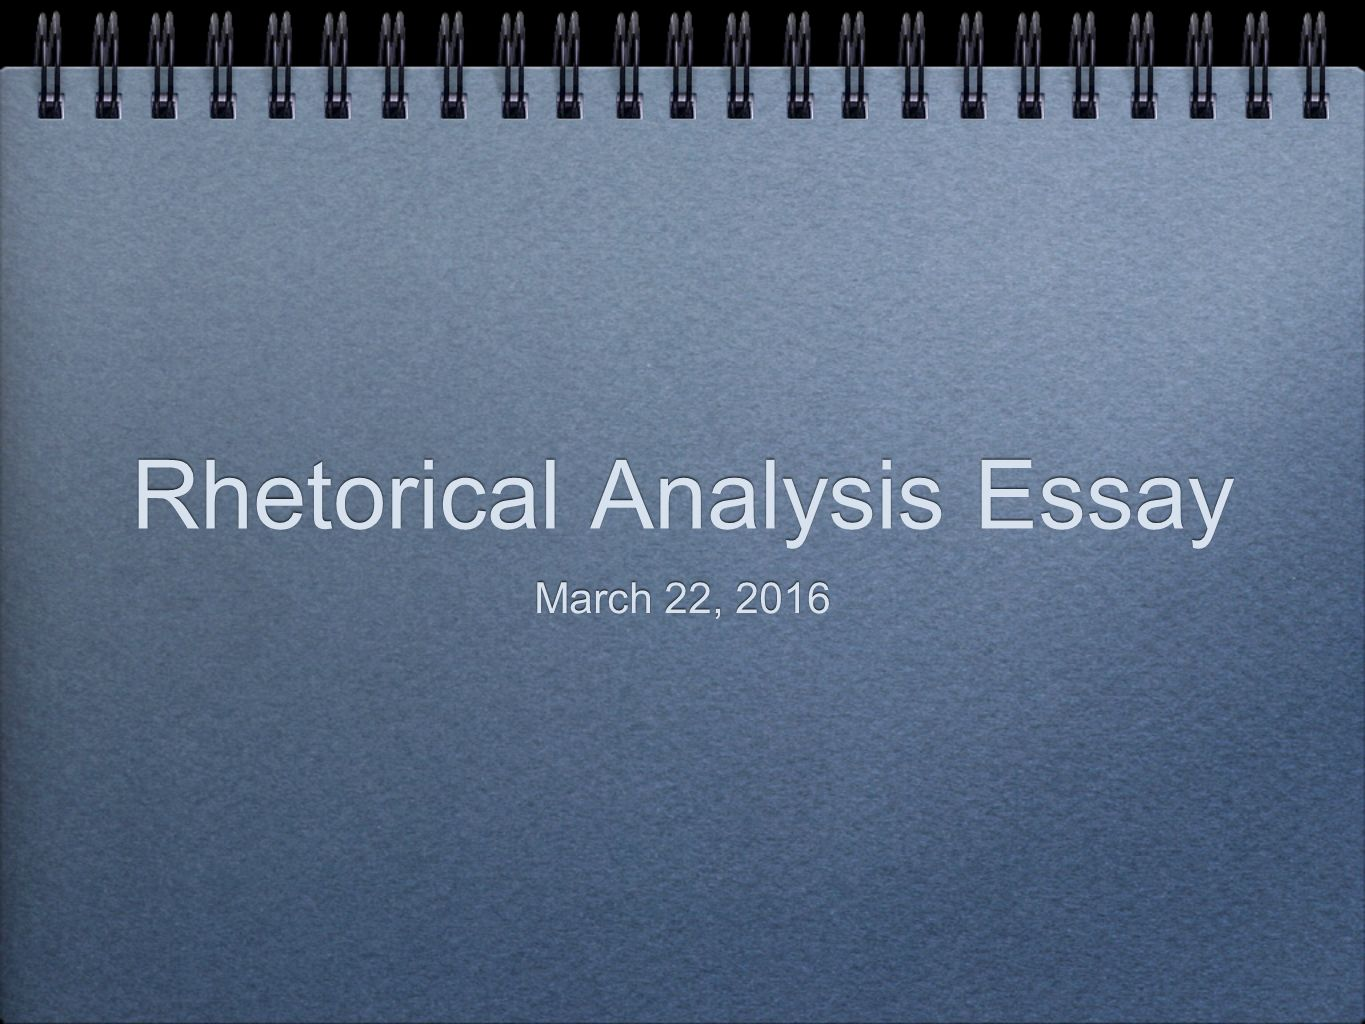 Rhetorical Analysis Essay March  Rhetorical Analysiswhat Is It   Rhetorical Analysis Essay March   From Thesis To Essay Writing also How To Write A Thesis Paragraph For An Essay  Frankenstein Essay Thesis